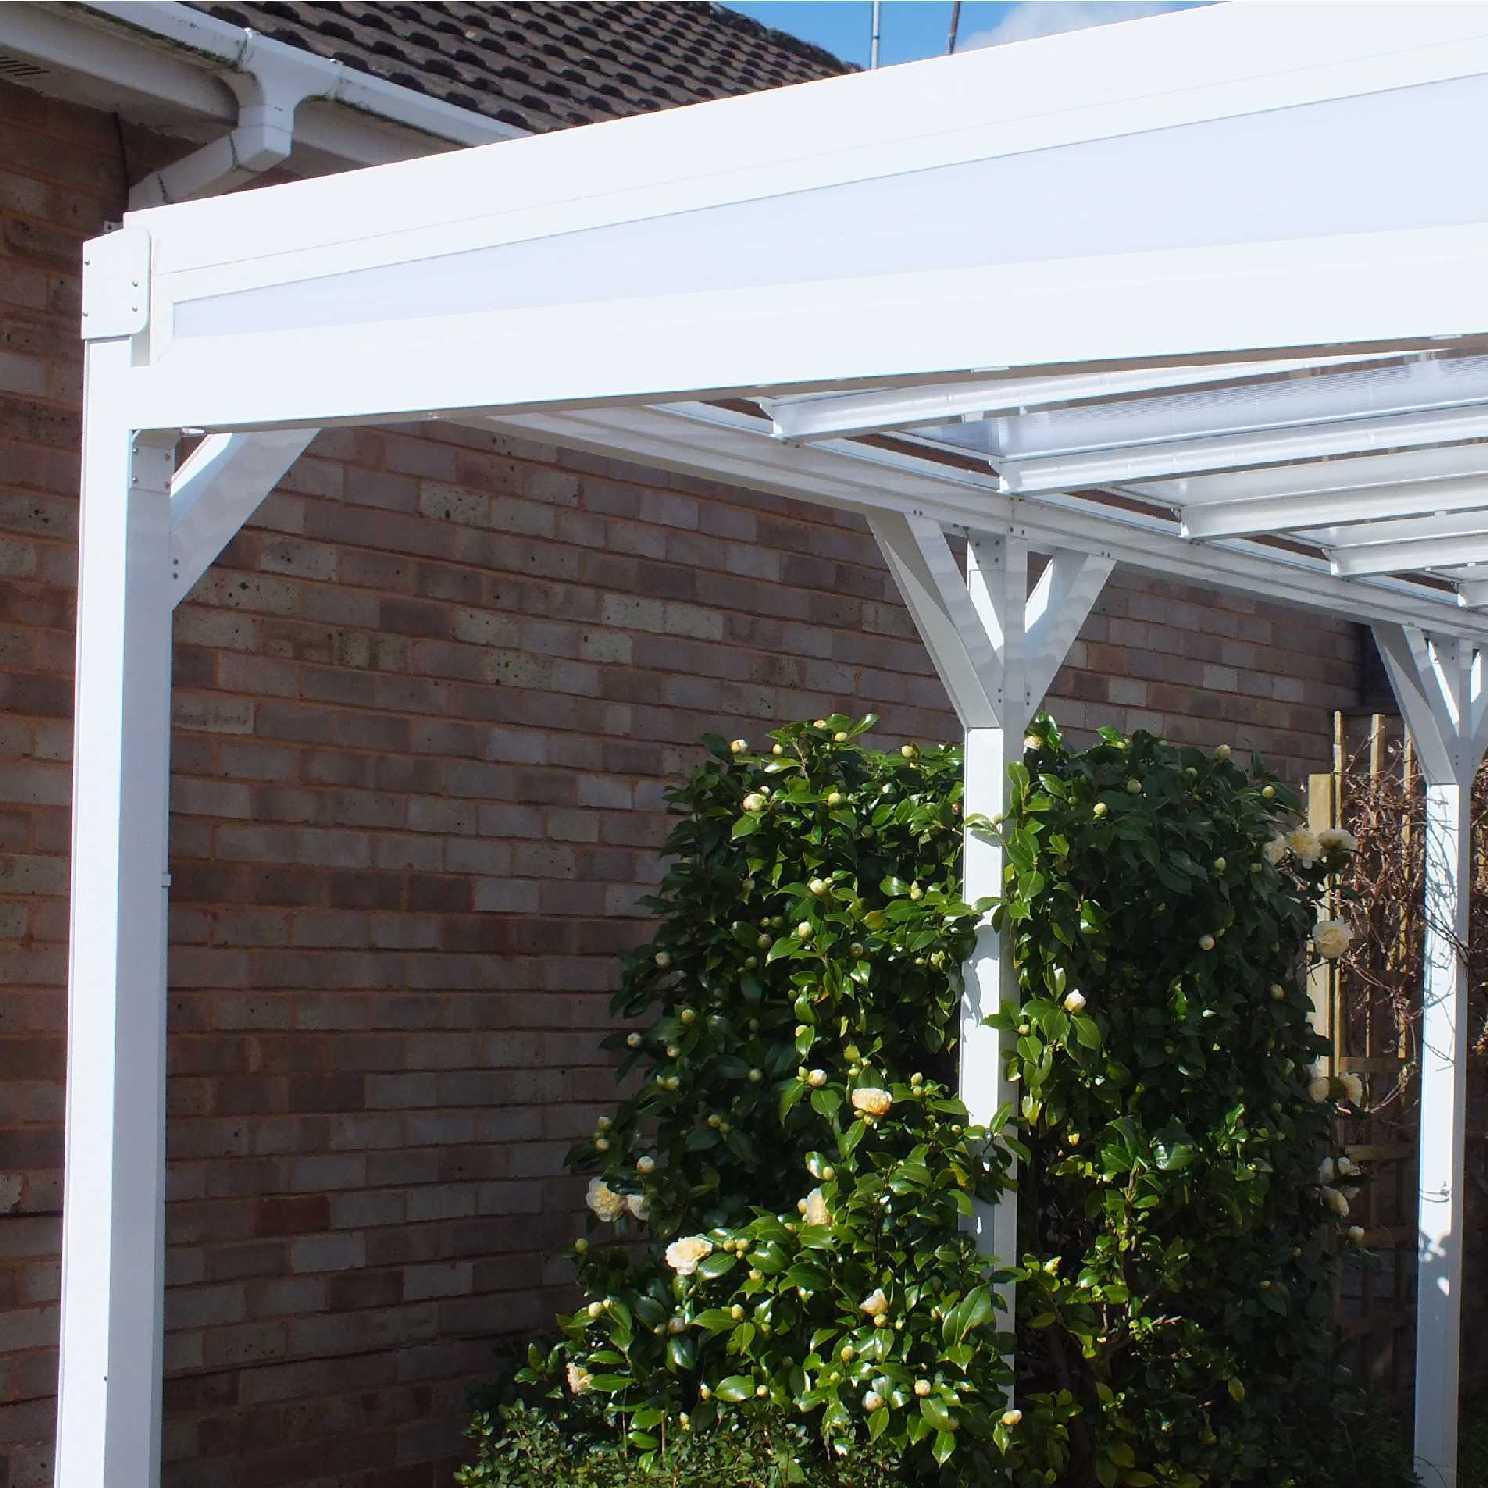 Omega Smart Lean-To Canopy with 16mm Polycarbonate Glazing - 4.2m (W) x 4.0m (P), (3) Supporting Posts from Omega Build